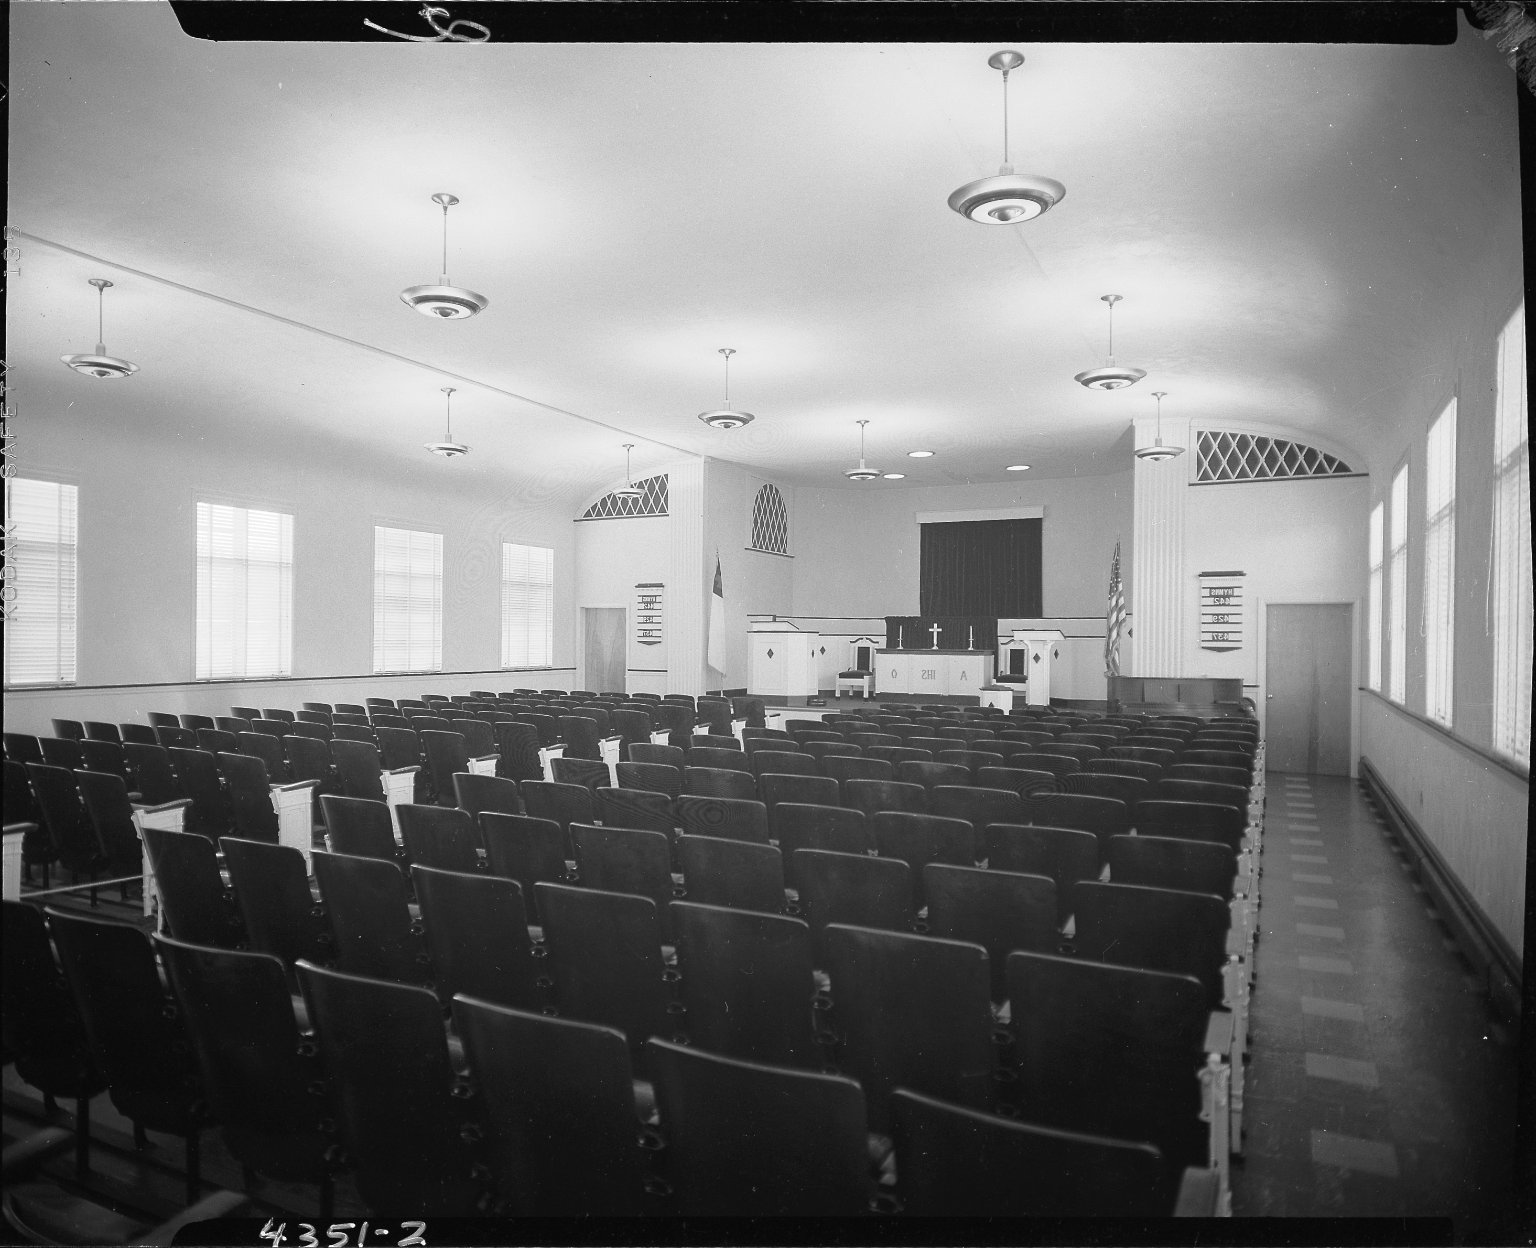 Miller Lumber Company, Hope Reformed Church, interior, Kalamazoo, MI